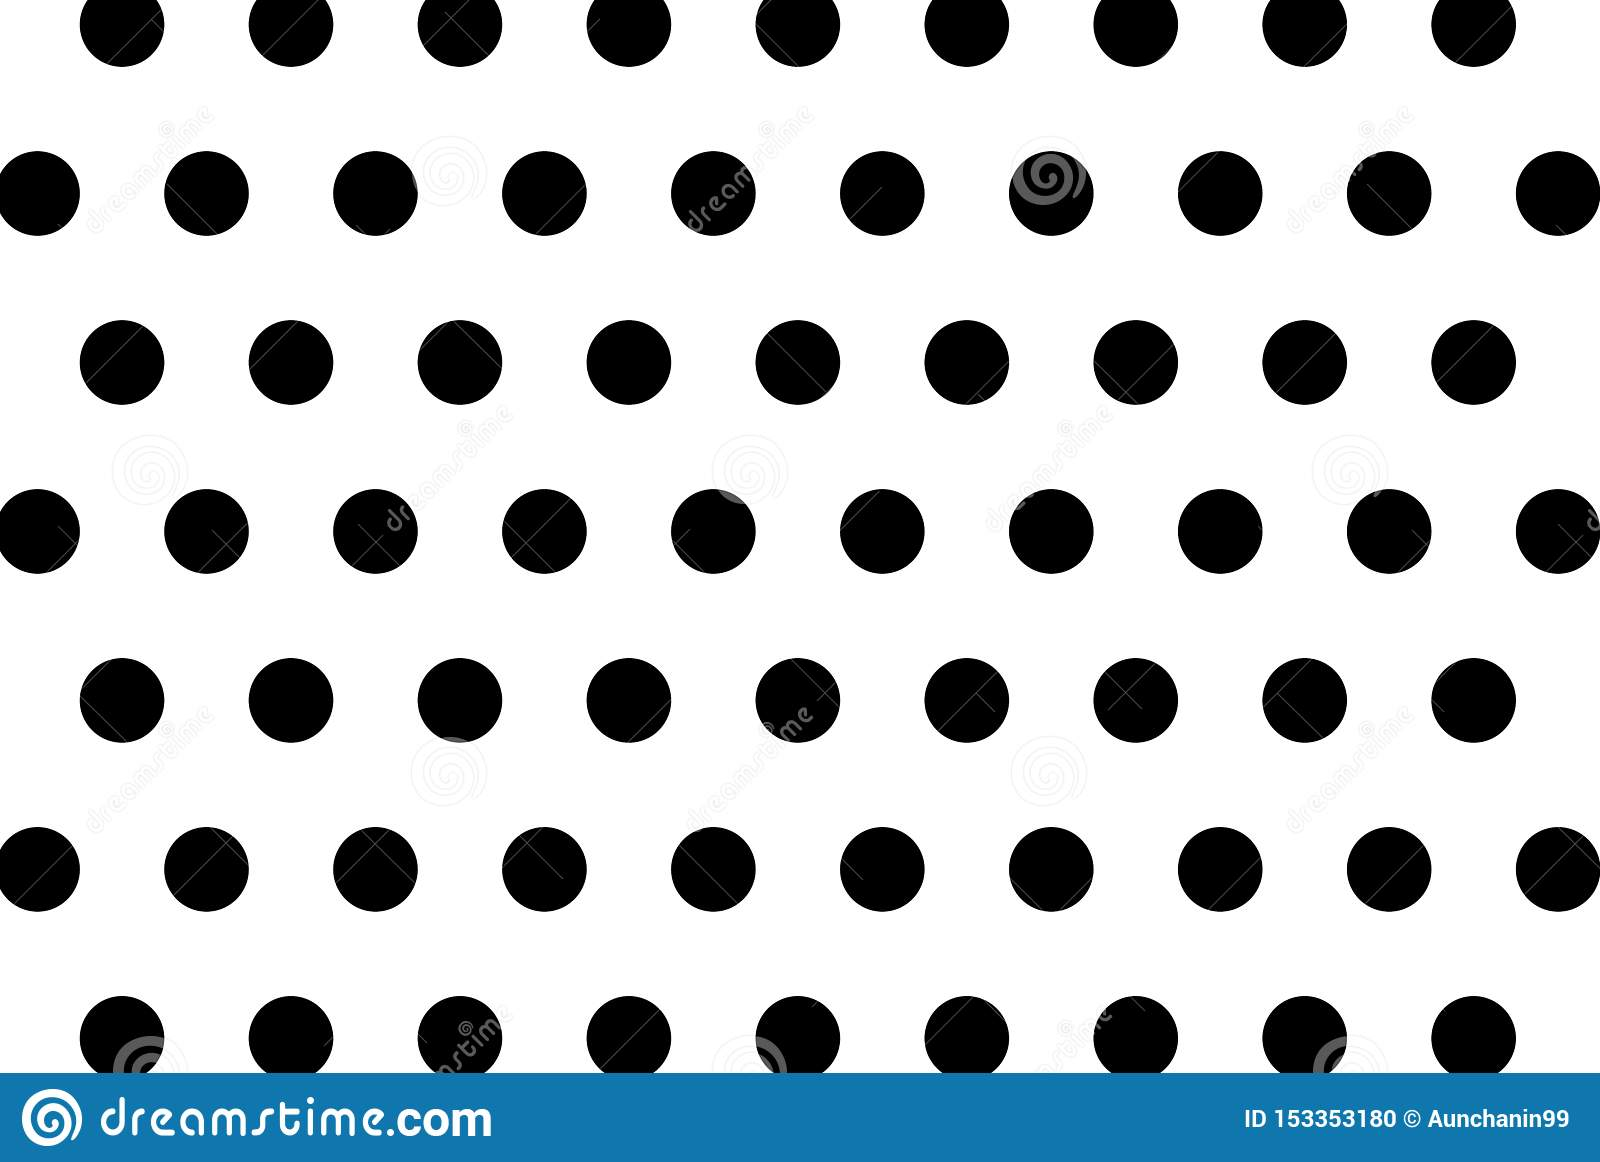 Polka dots on white background.